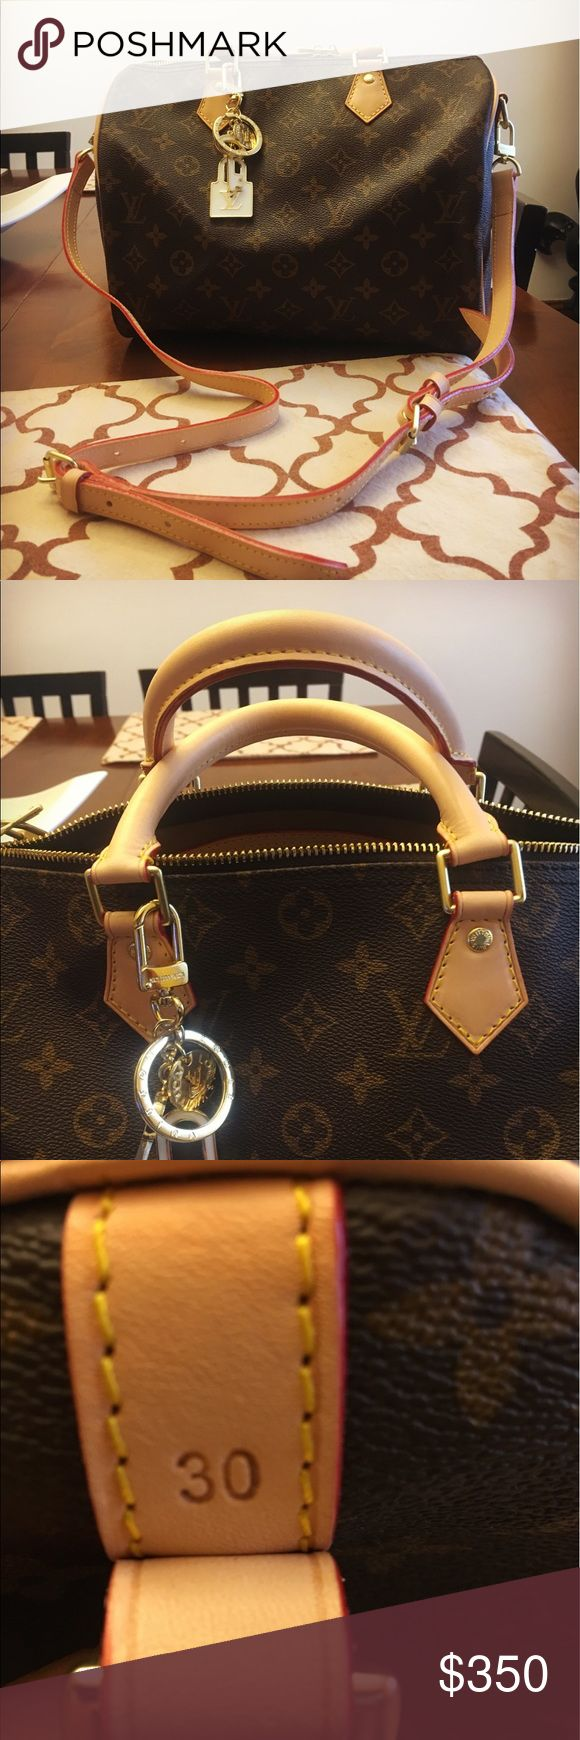 💙💙LV Speedy monogram 30💙💙 💙💙beautiful inspired LV speedy 30 bag , must have and will love , leather high end materials . 💙will be please with buy💙💙 Louis Vuitton Bags Shoulder Bags